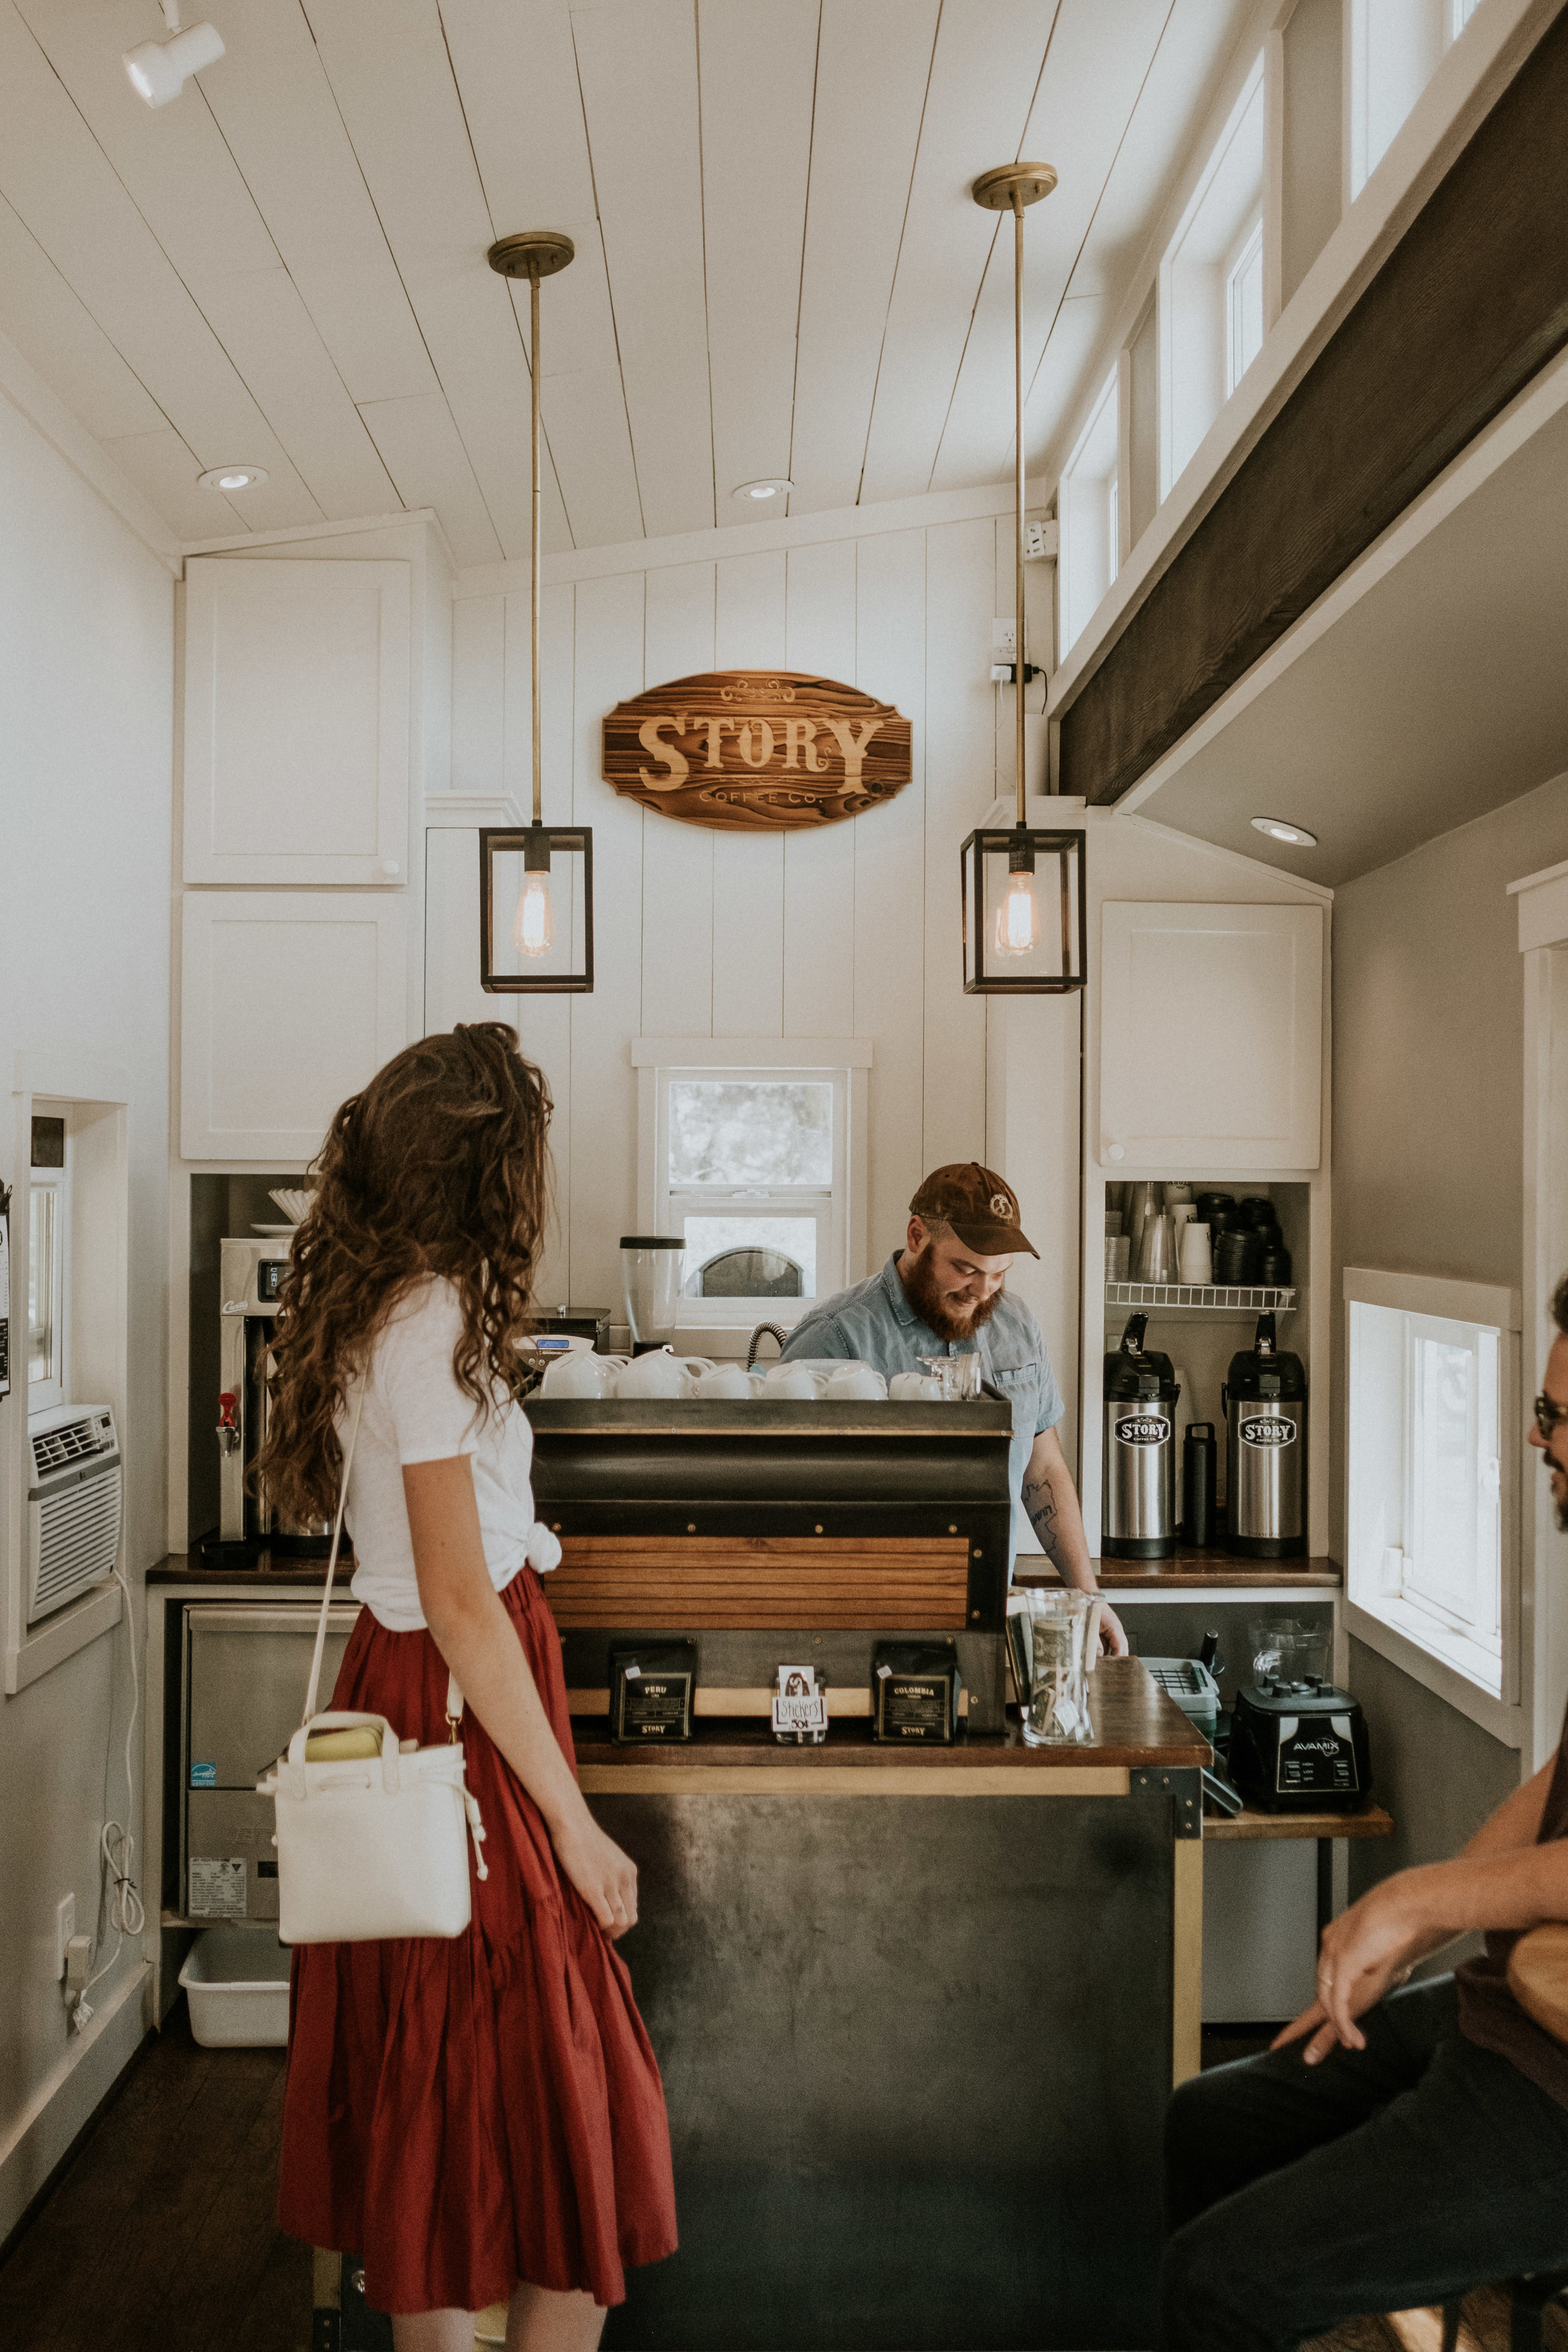 Story Coffee Co. in CO Springs